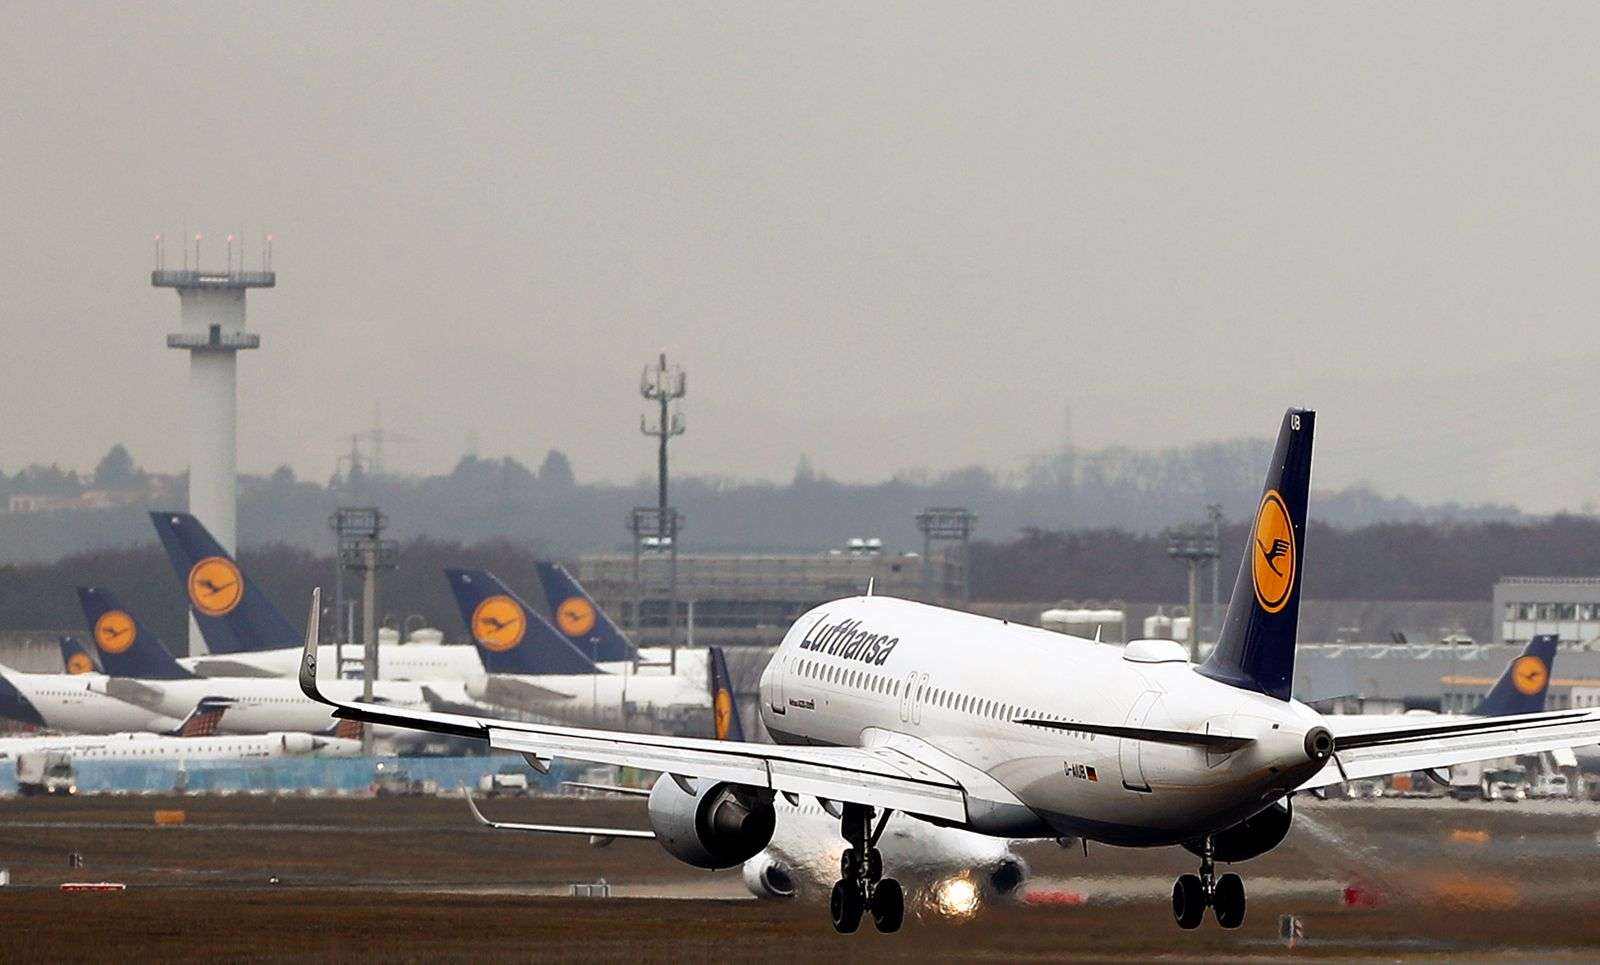 Planes of German air carrier Lufthansa are seen at the airport in Frankfurt